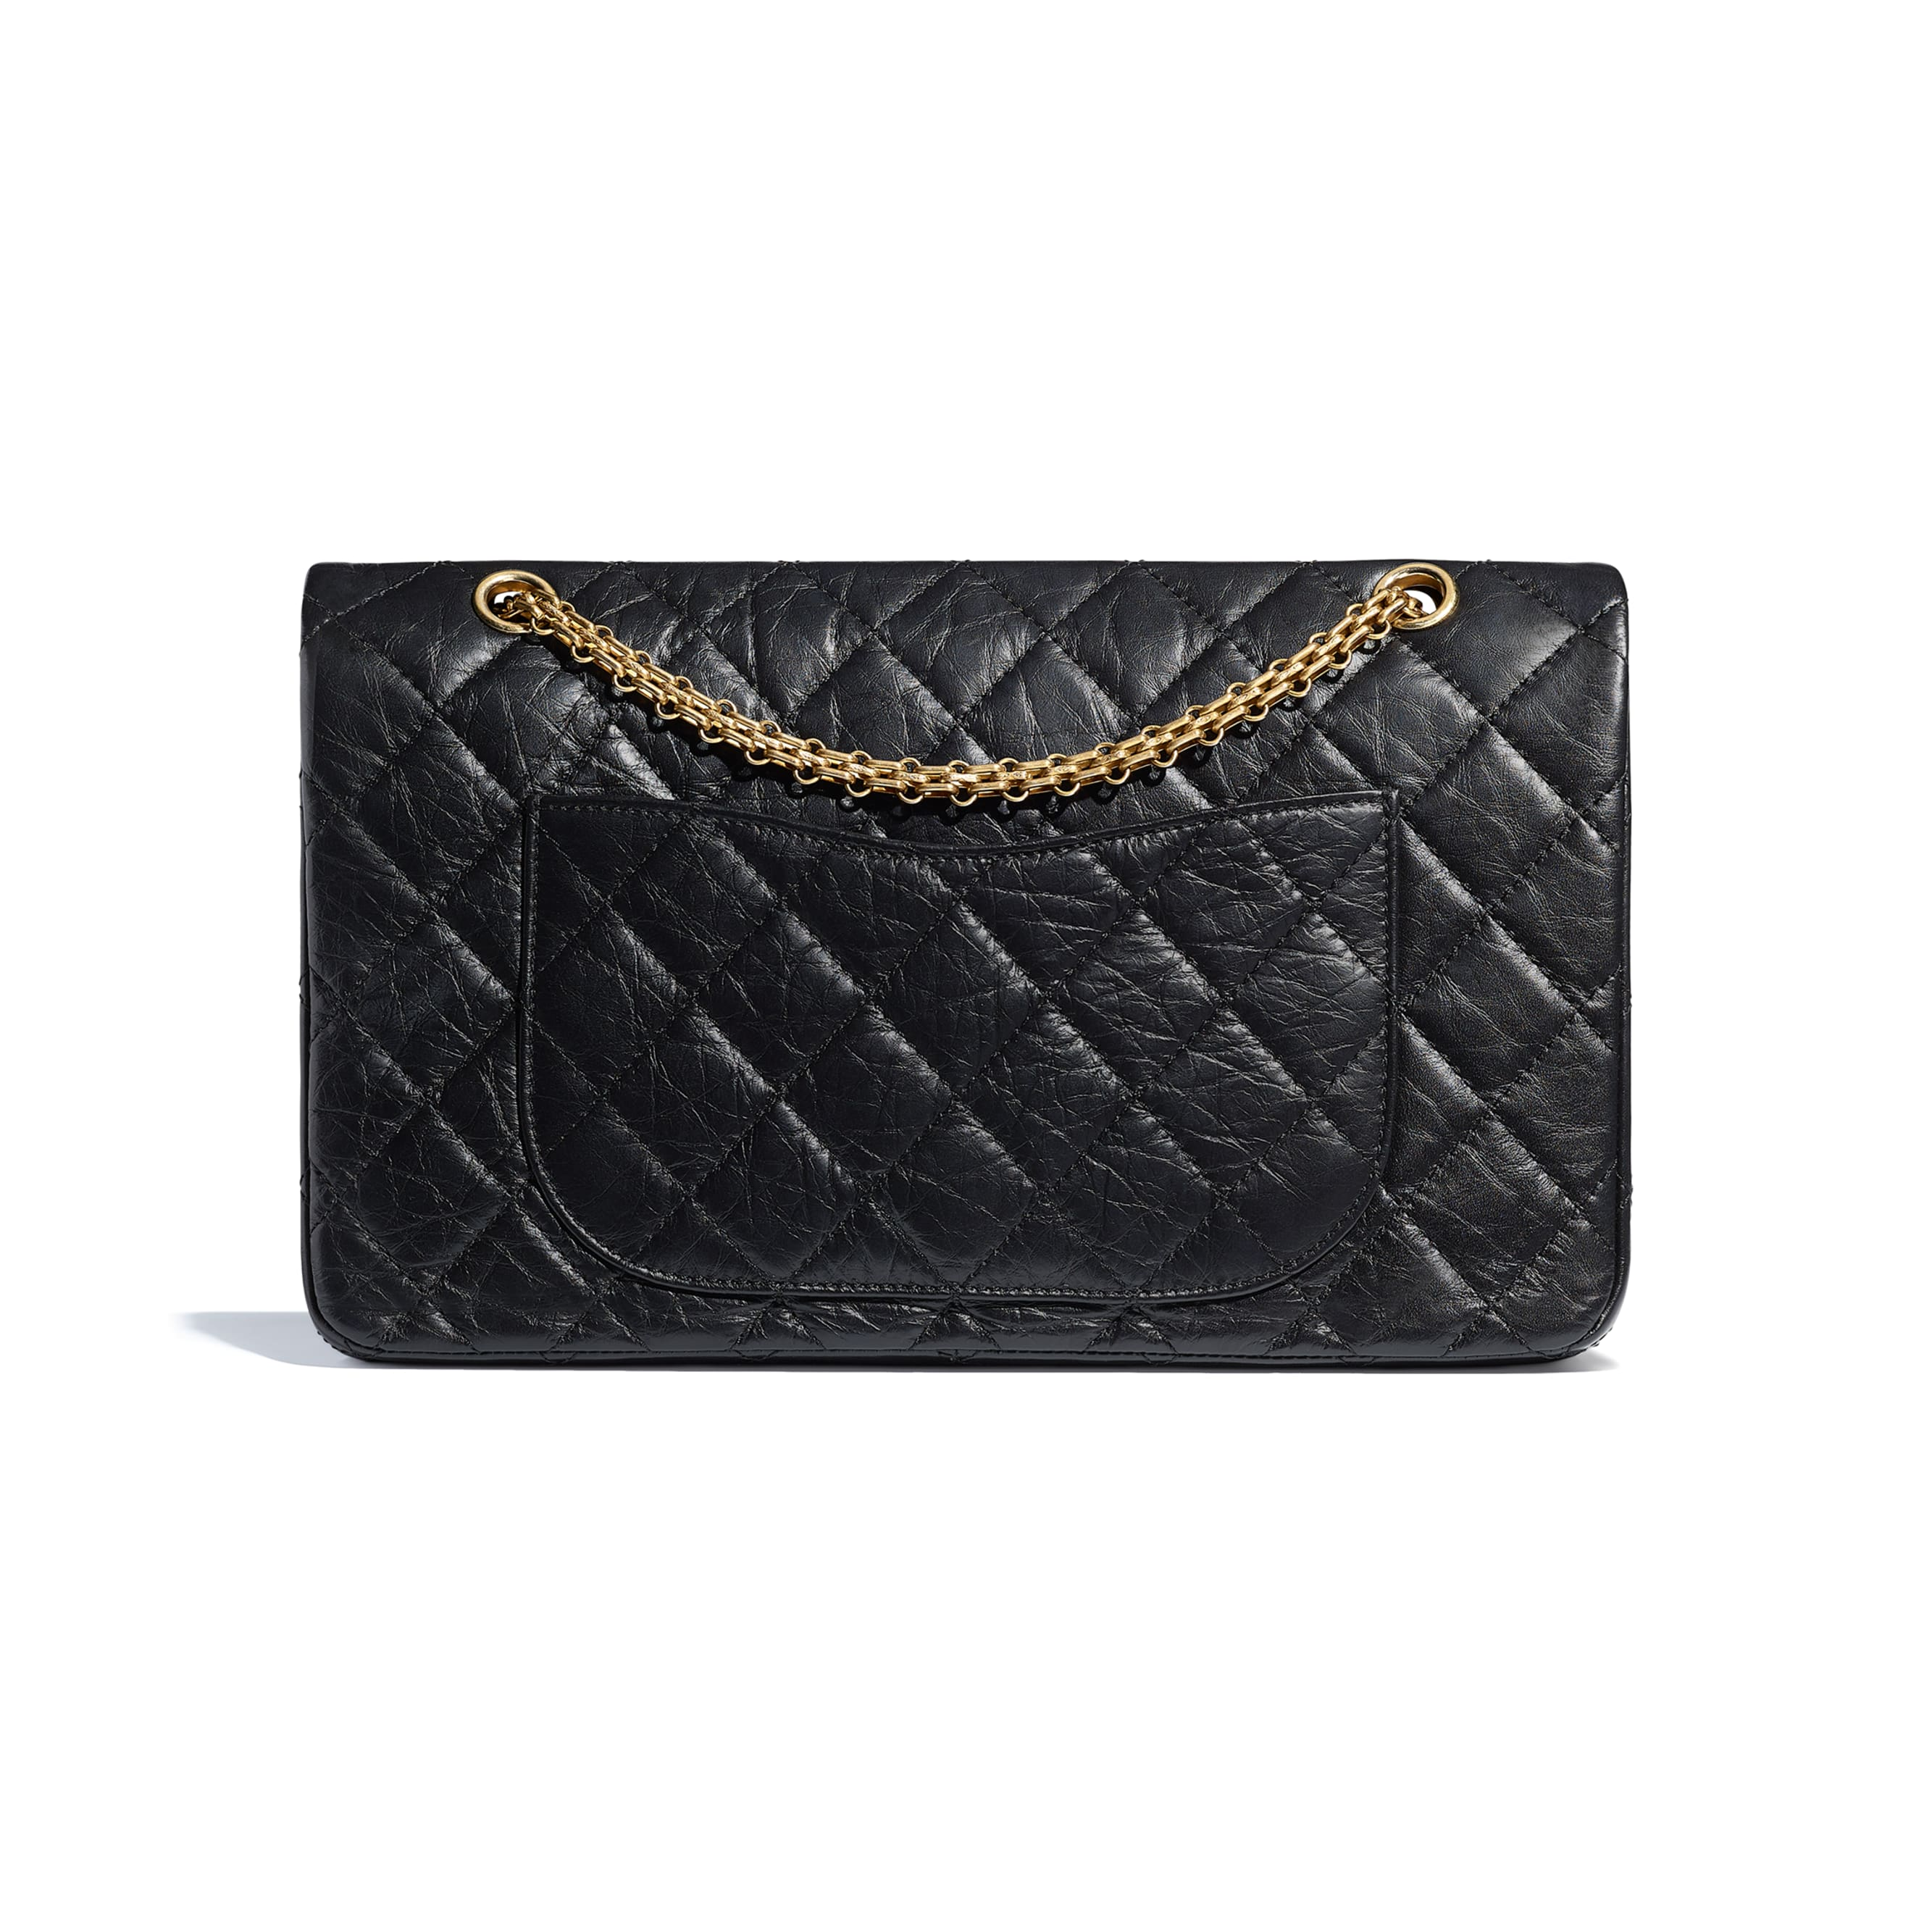 Maxi 2.55 Handbag - Black - Aged Calfskin & Gold-Tone Metal - CHANEL - Alternative view - see standard sized version